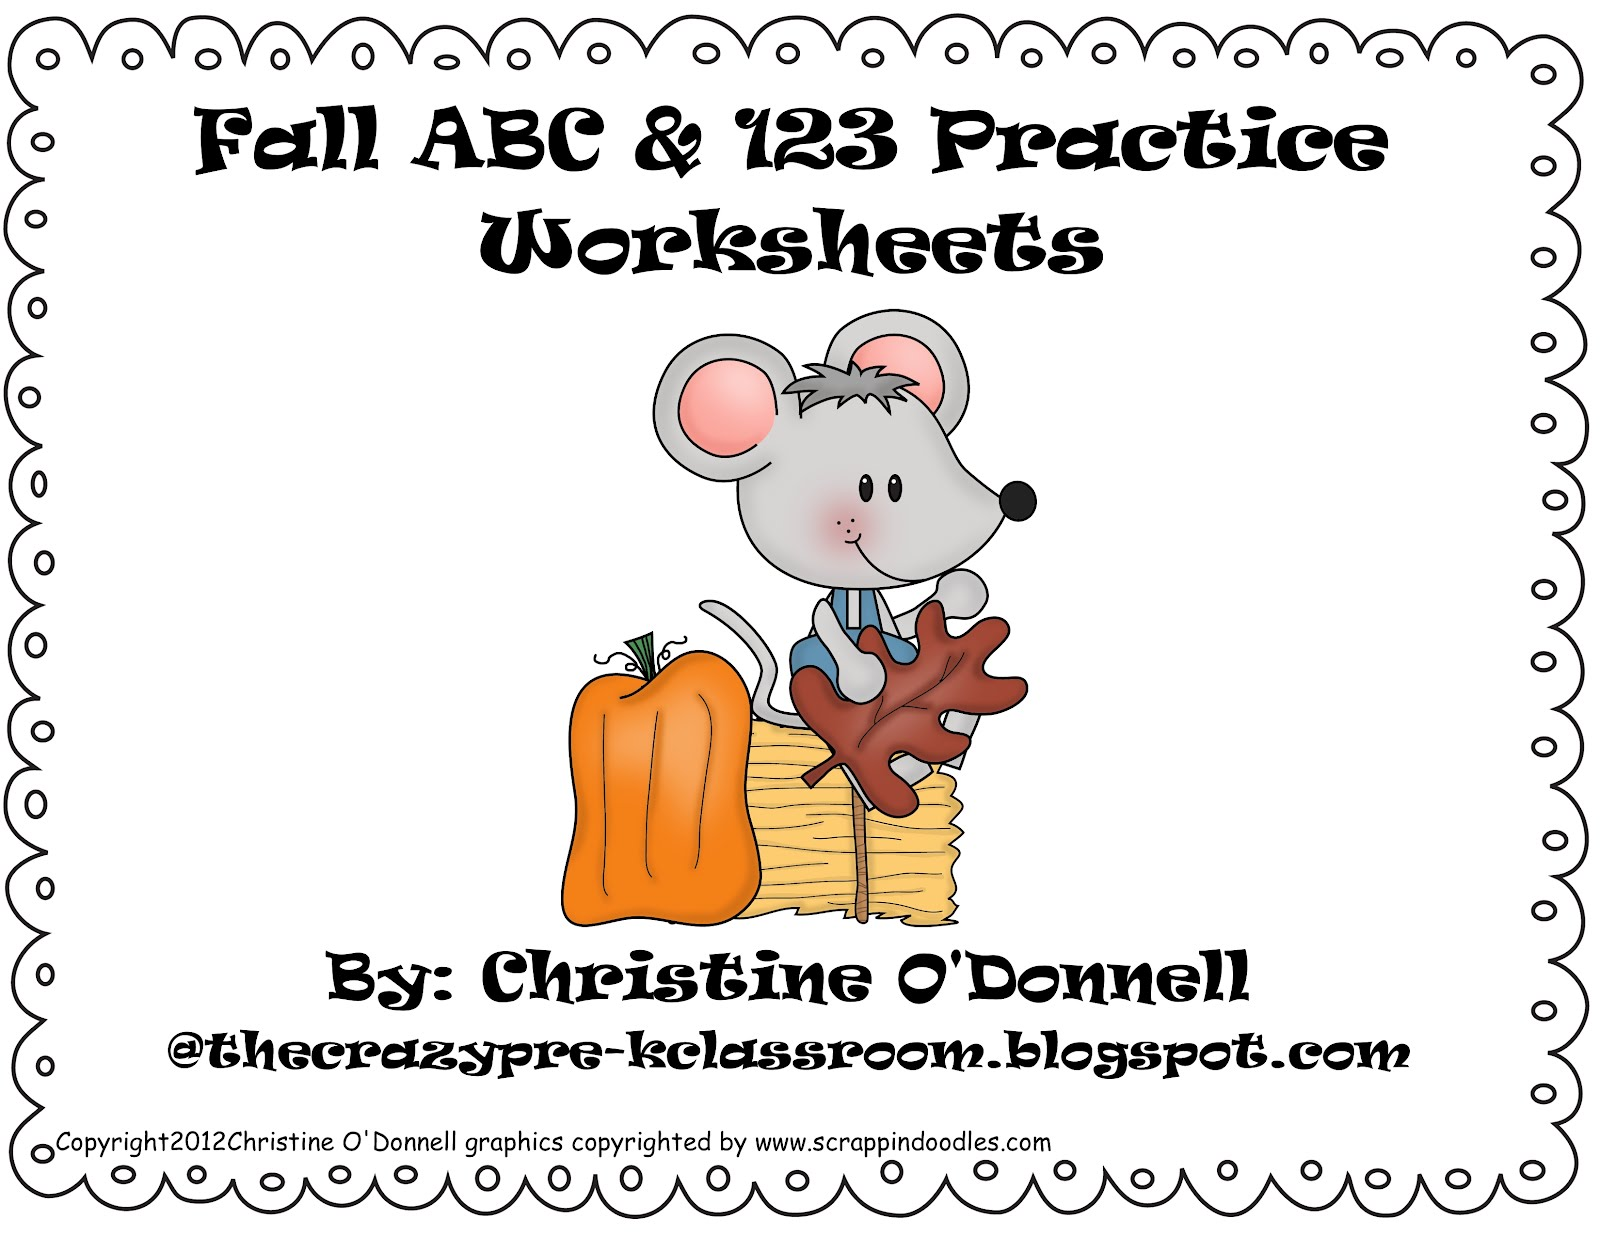 hight resolution of The Crazy Pre-K Classroom: Fall Freebie! Fall themed ABC and 123 Worksheets!  Deanna Jump reaches $1